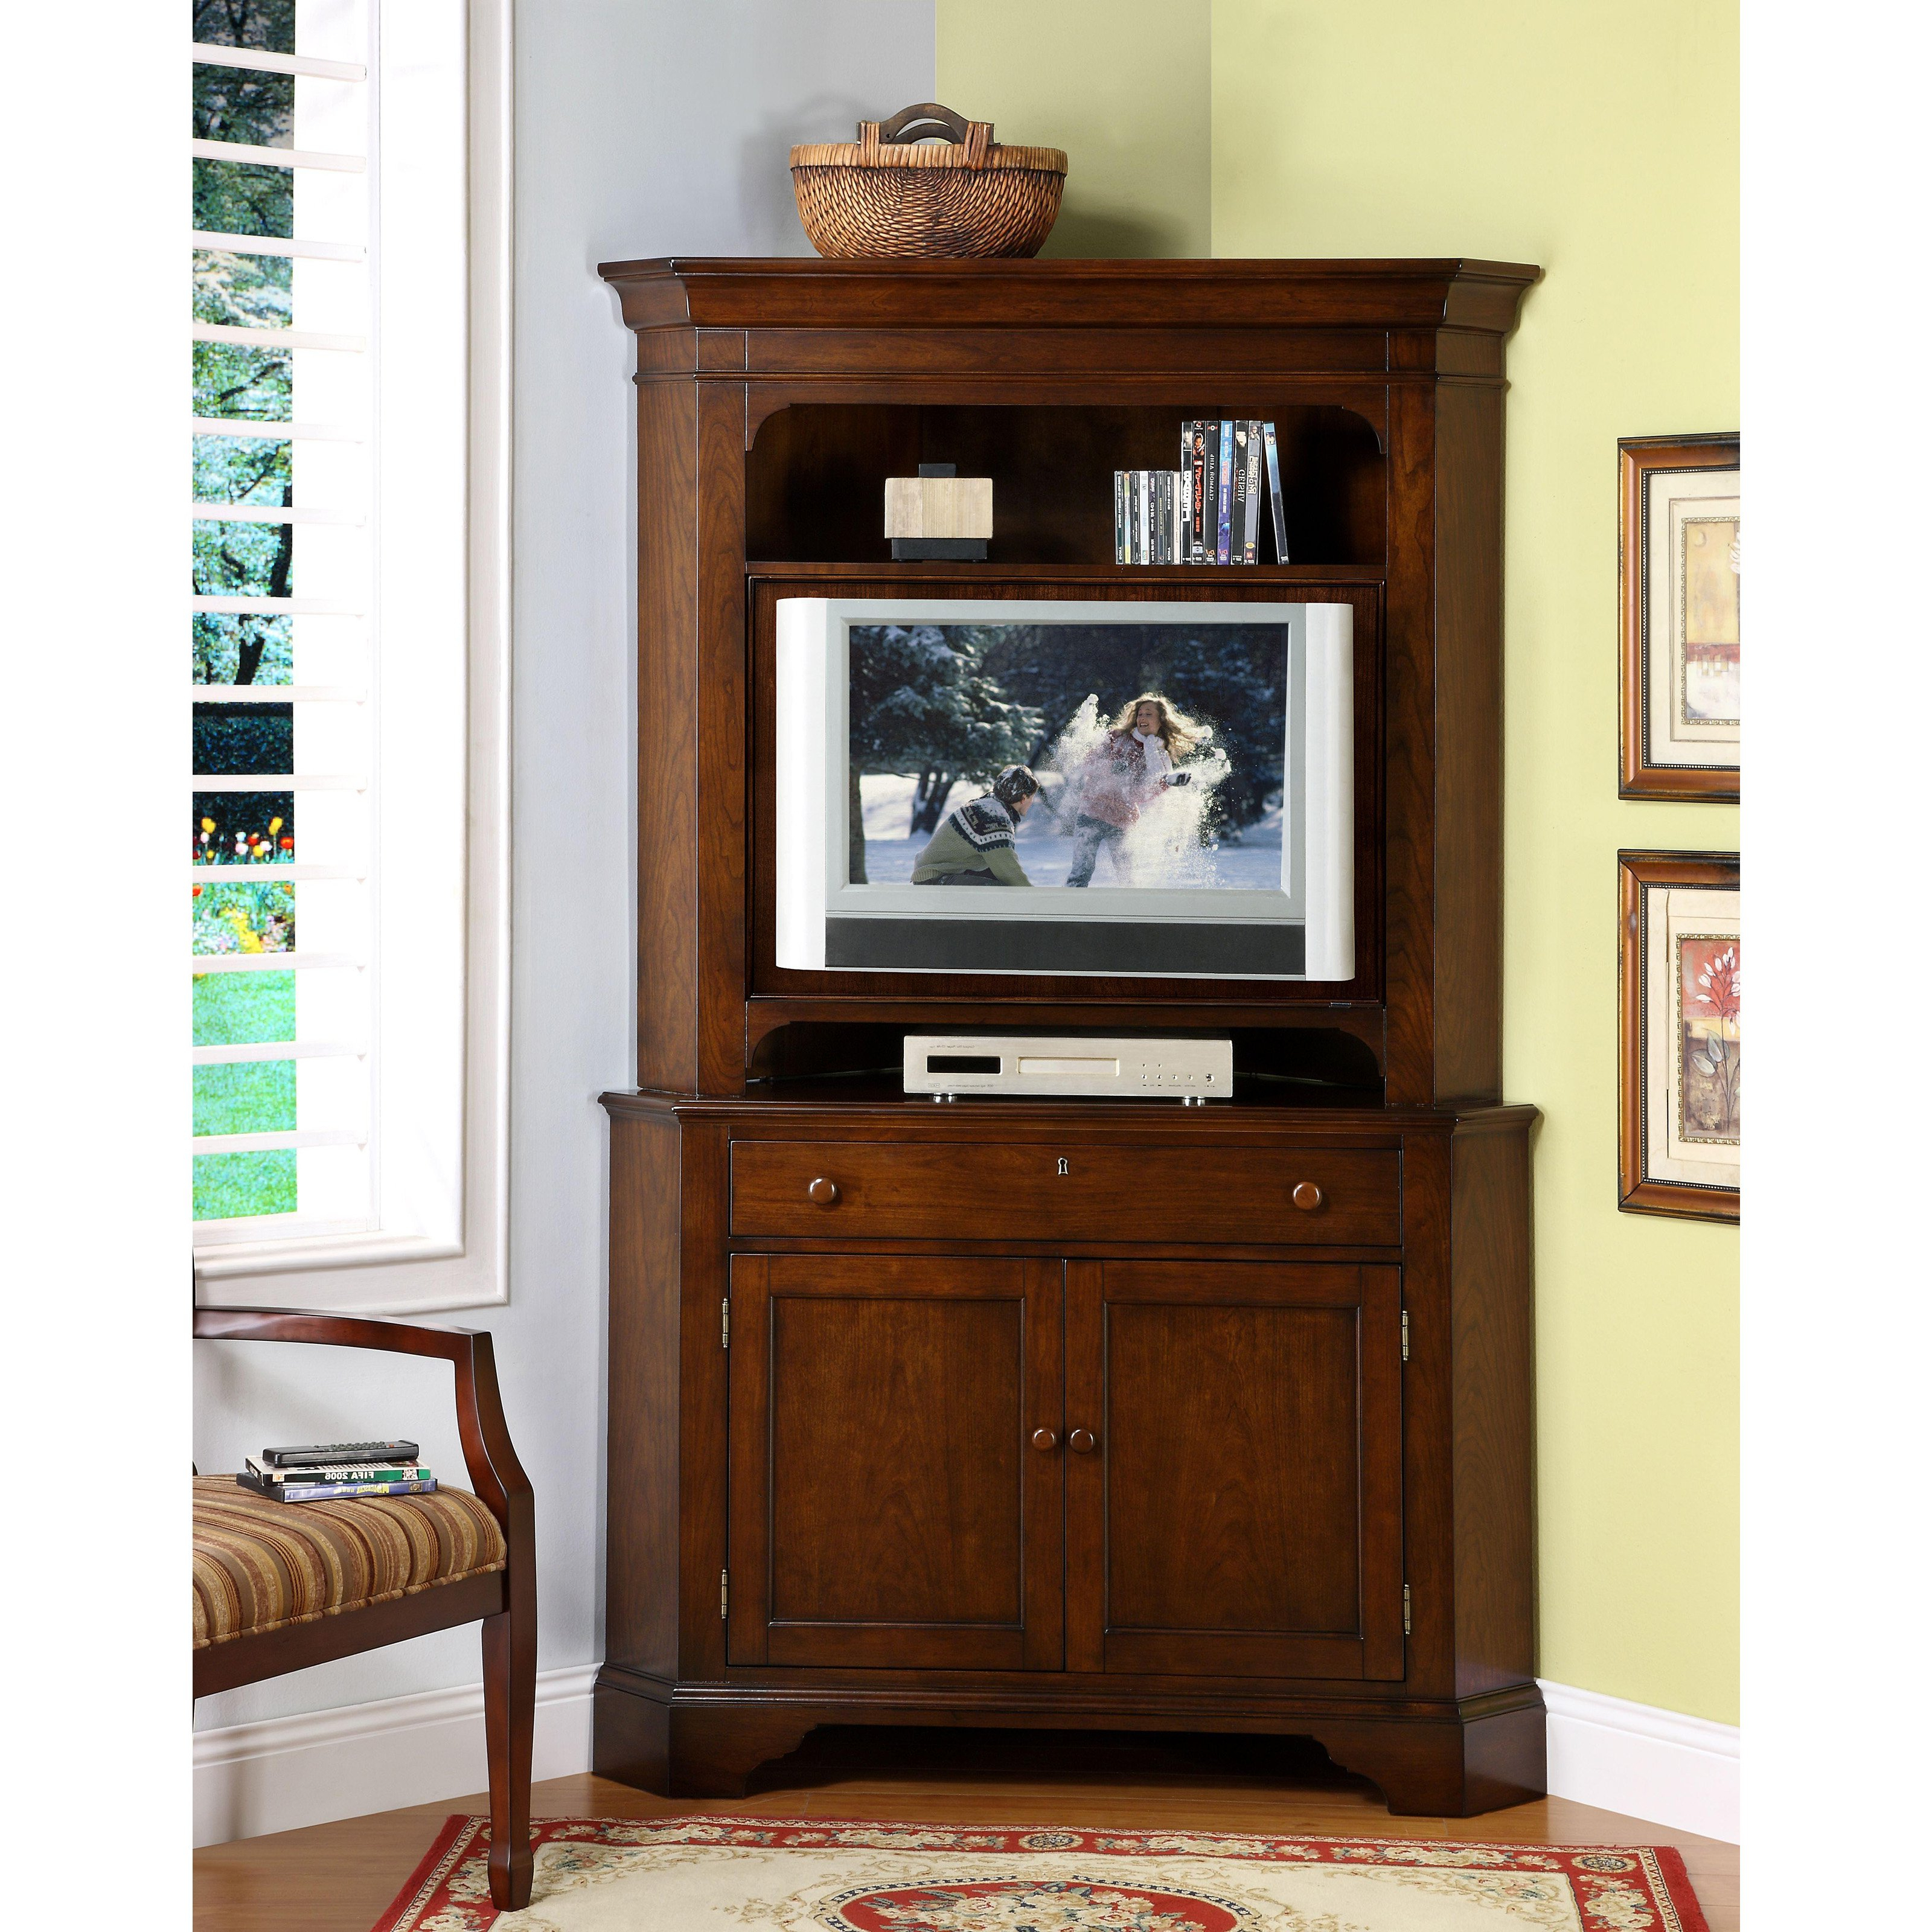 Rustic Tv Cabinets Throughout Widely Used Corner Rustic Tv Stand Hutches For Dining Room Schoumln 2 Door (View 16 of 20)